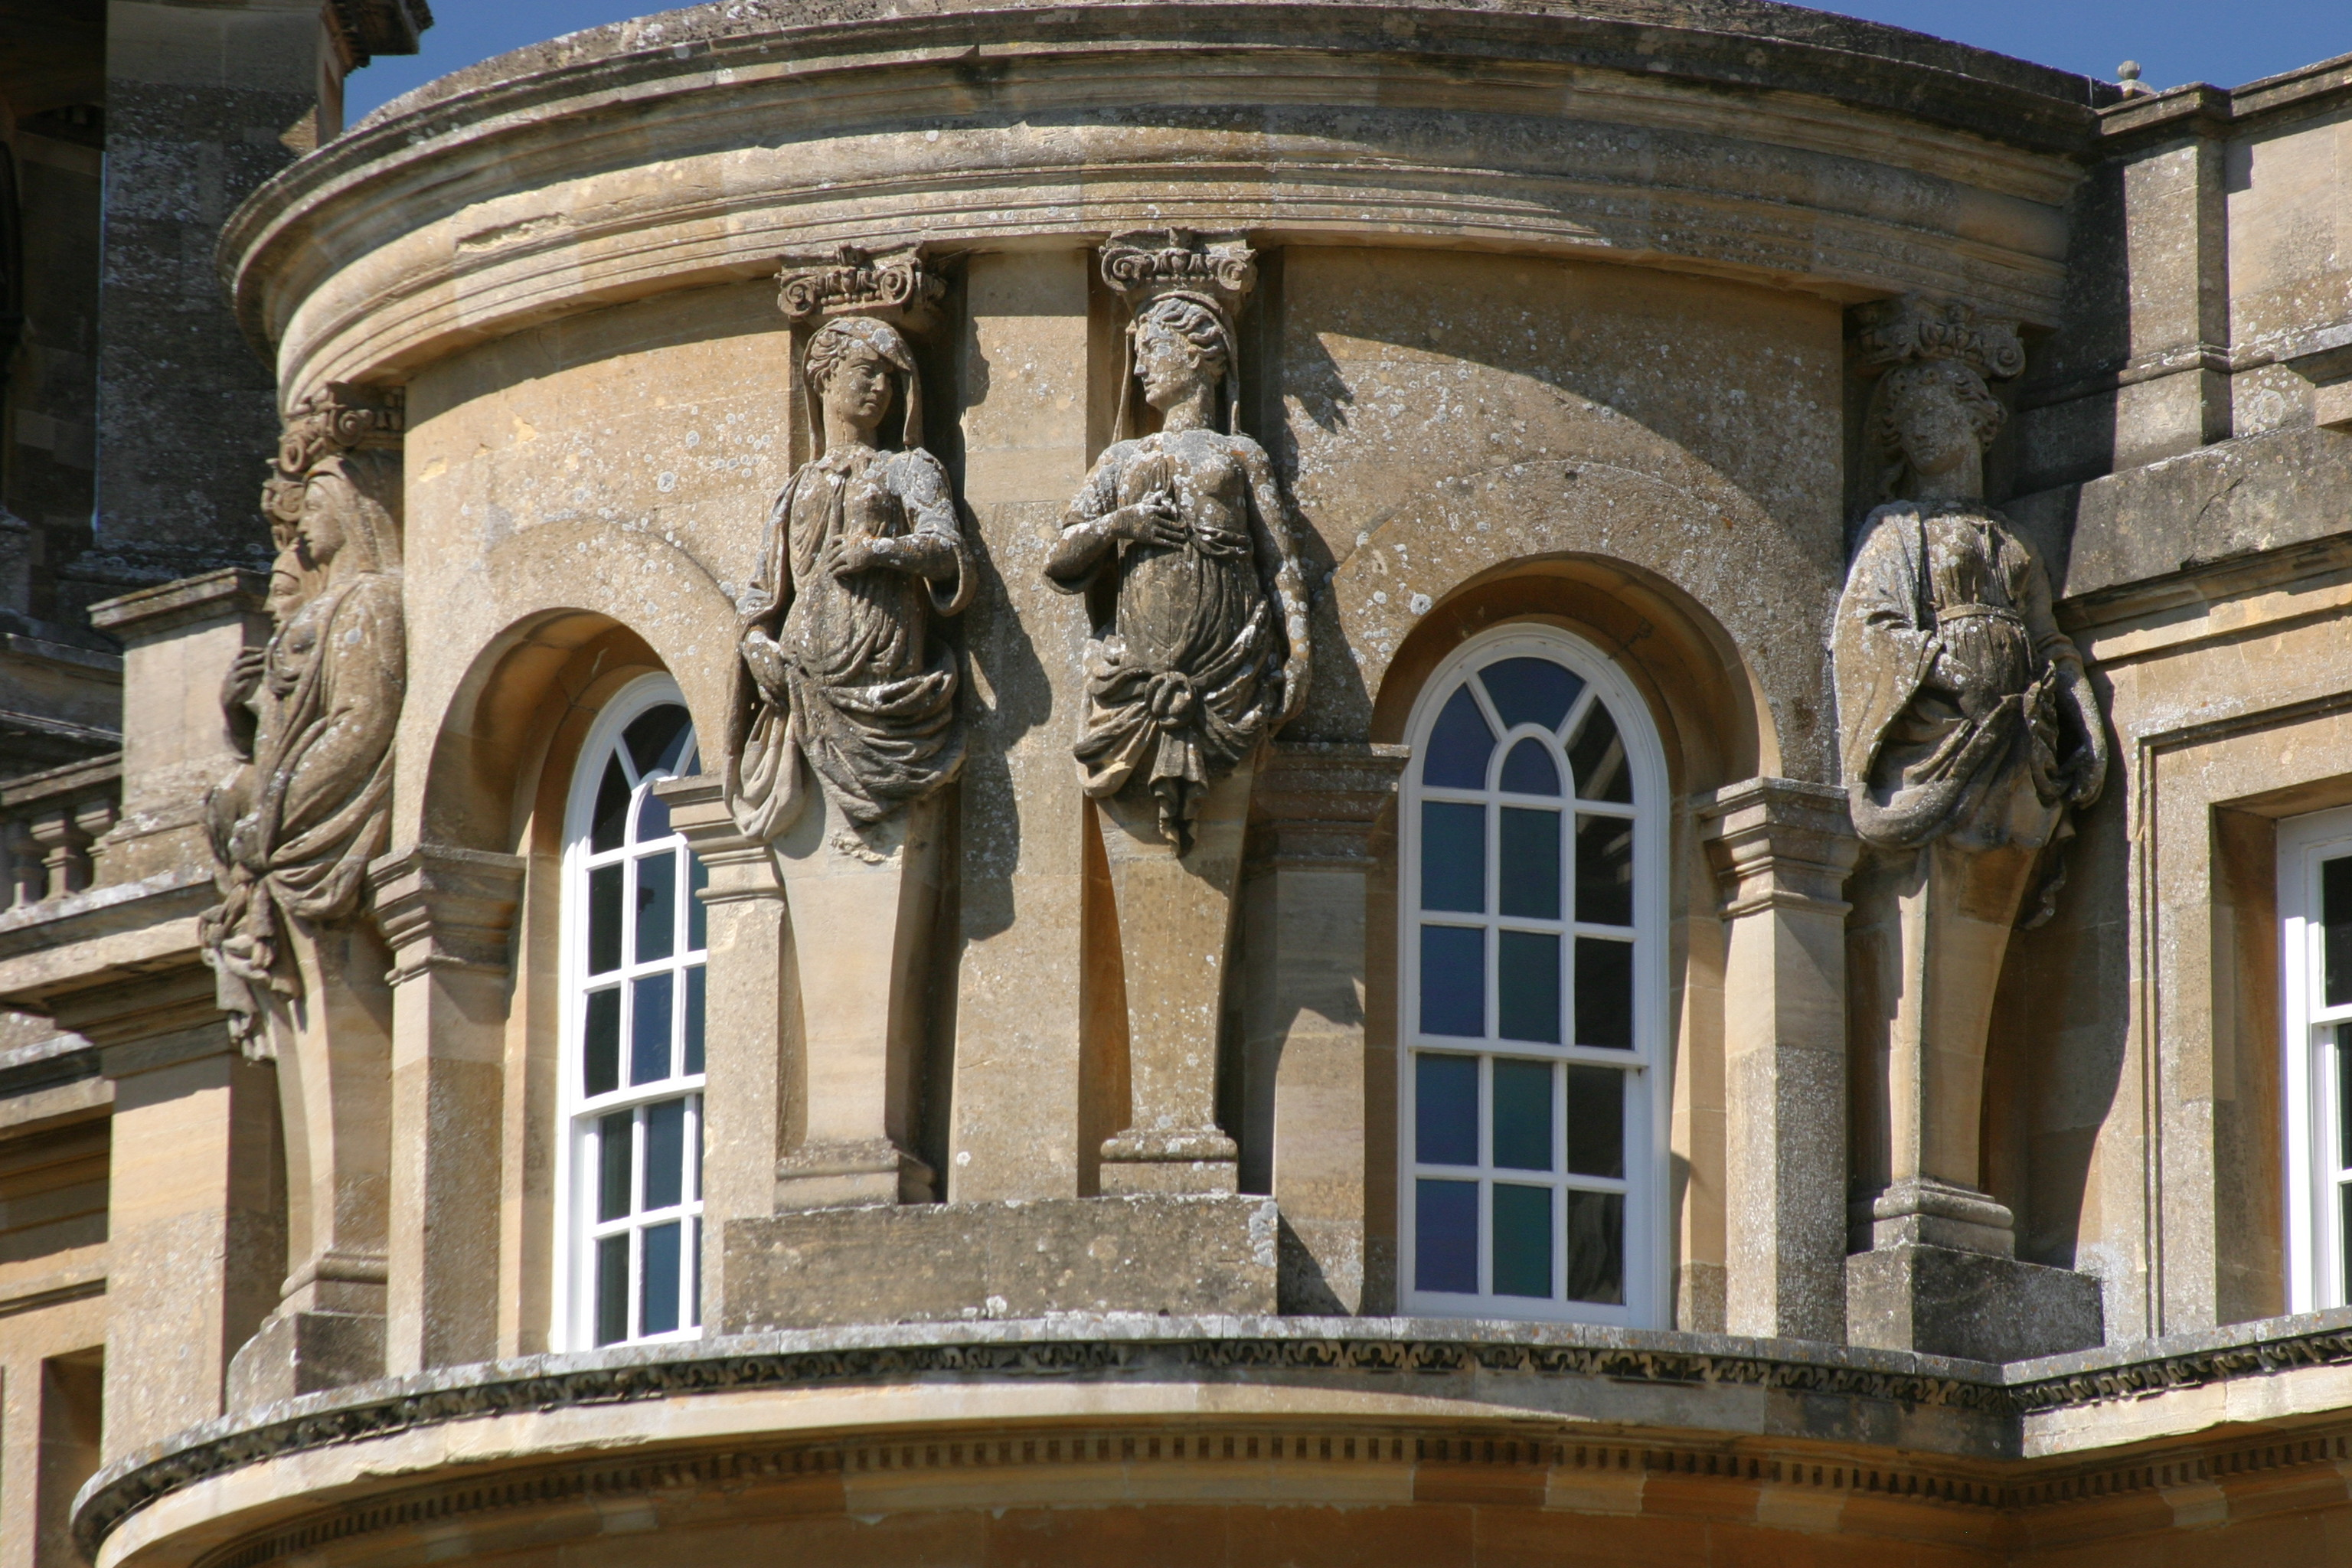 architectural history of blenheim palace Win a family day out at blenheim palace  with more than 300 years of history,  blenheim palace is a true masterpiece of 18th century baroque architecture.